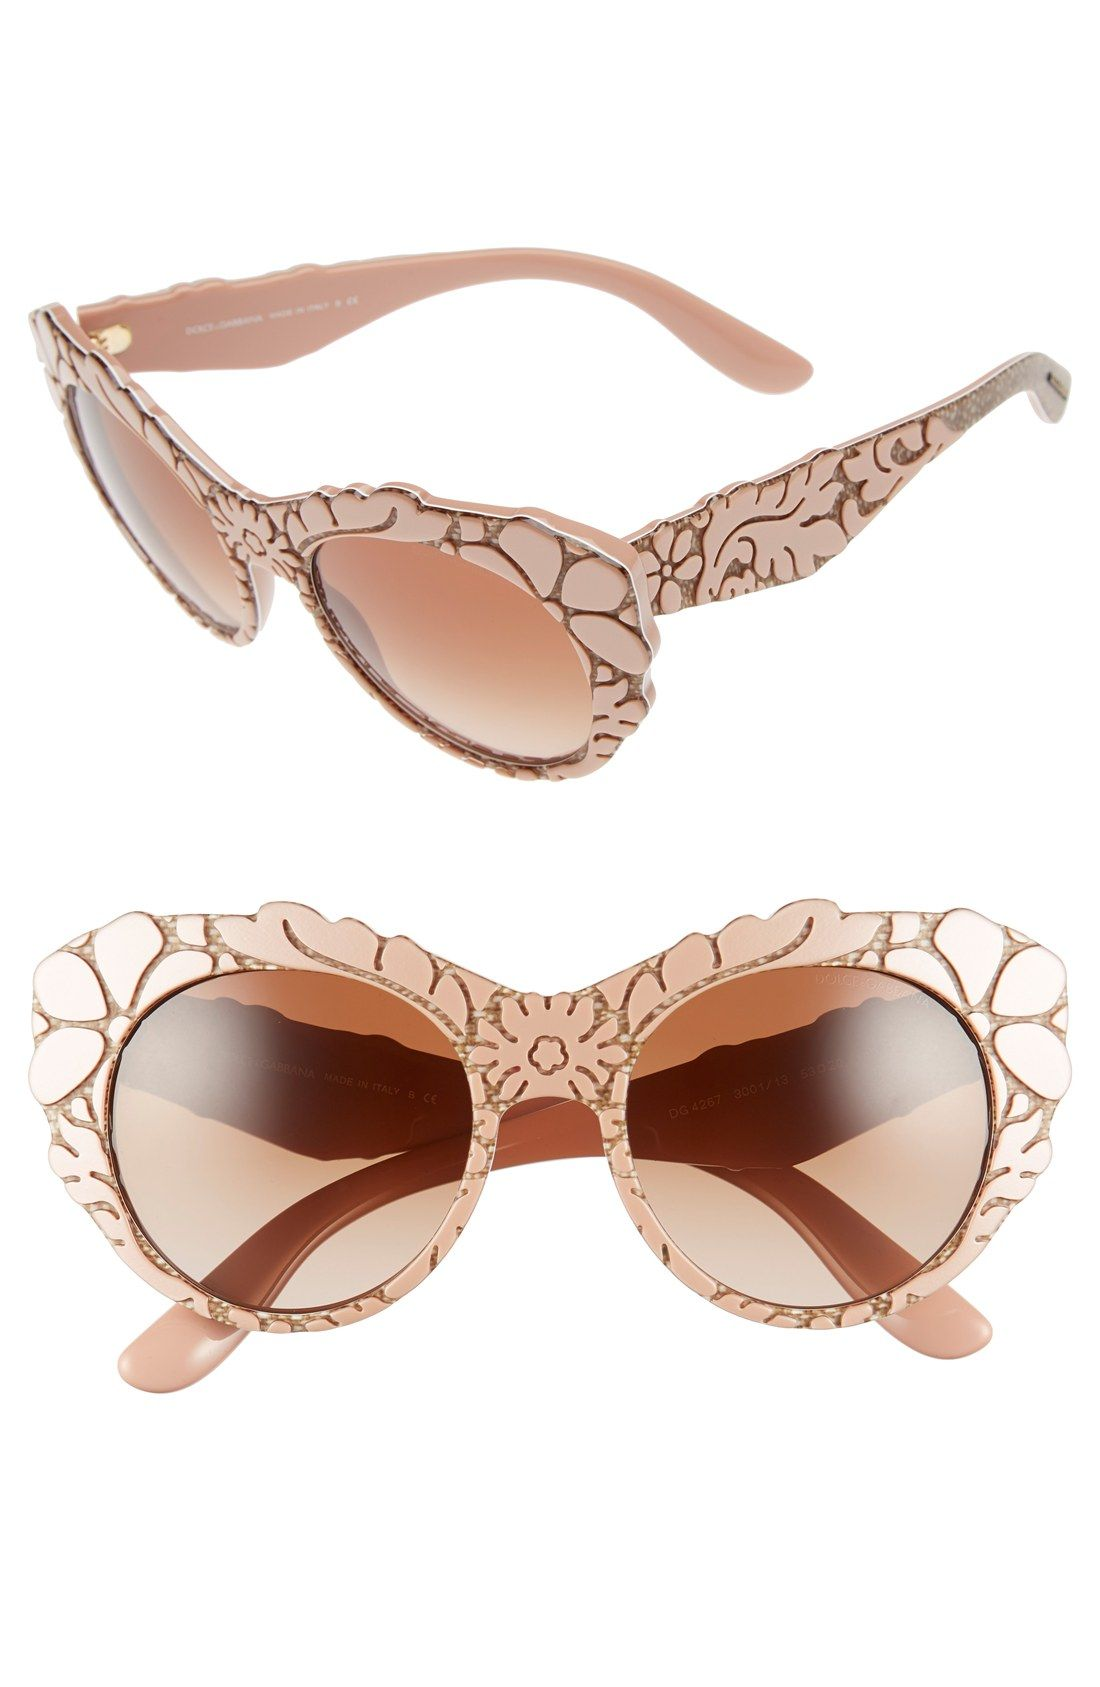 3b965c067a Obsessing over these floral-etched sunnies with eye-catching texture and  retro charm.